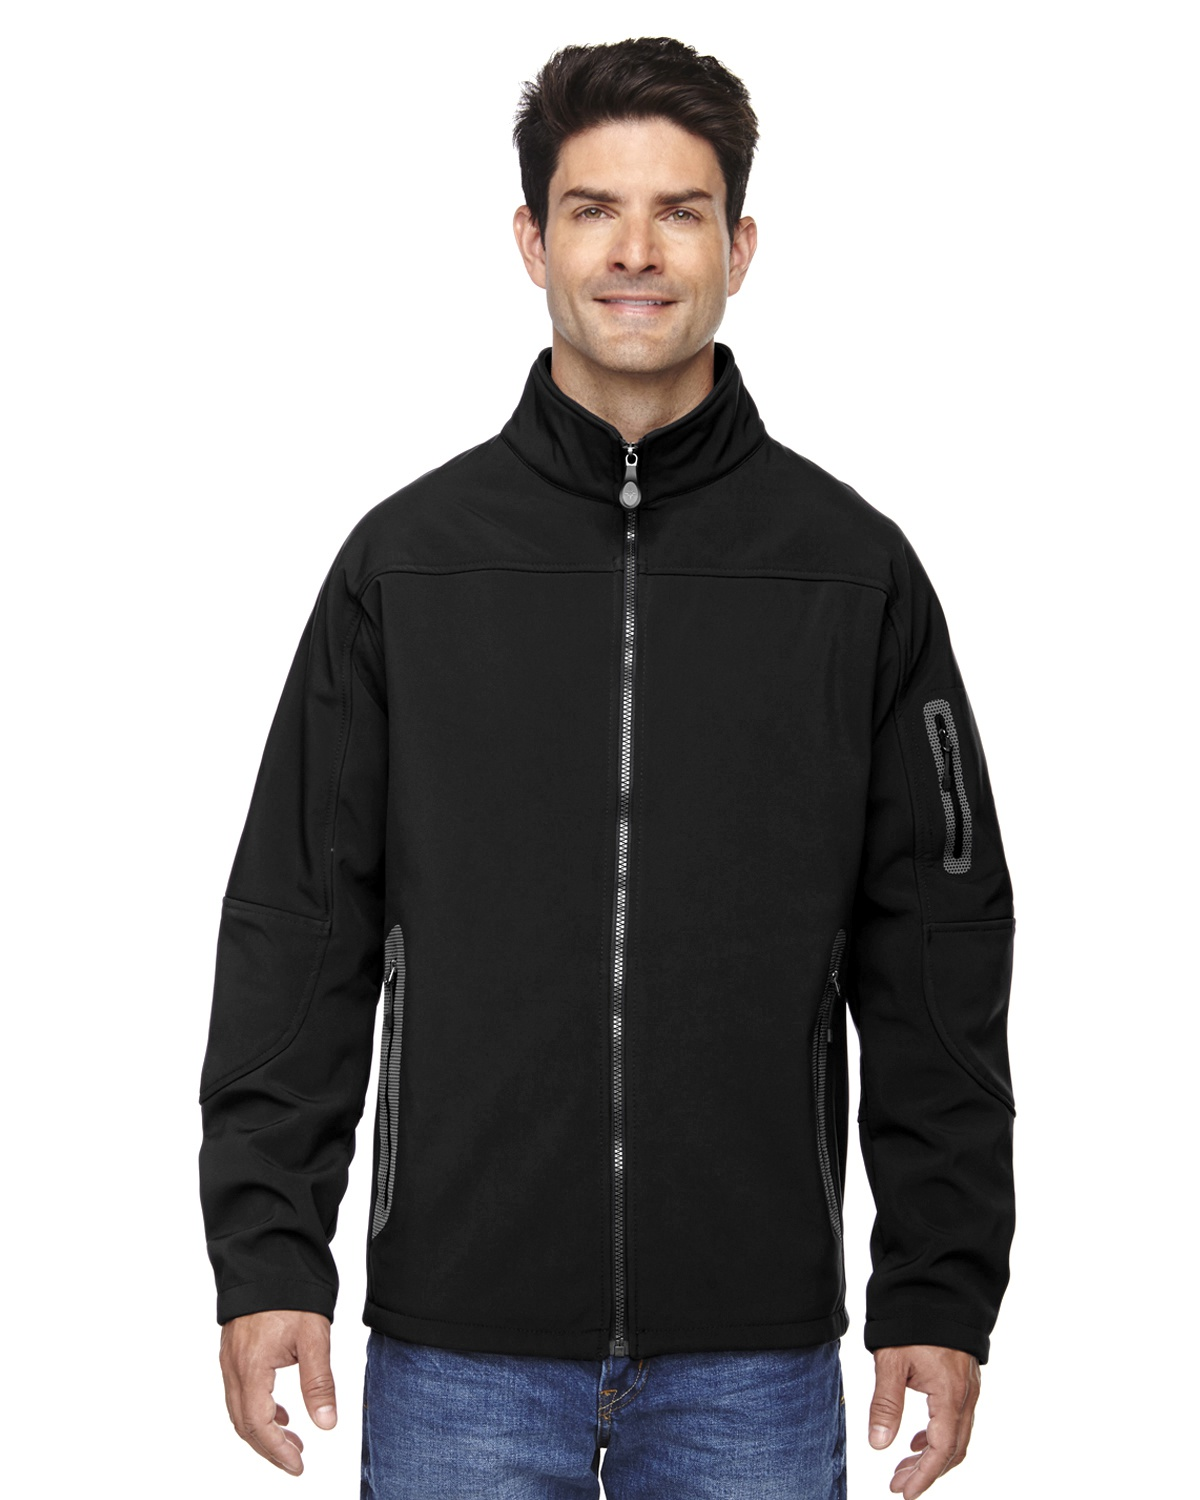 'Ash City - North End 88138 Men's Three-Layer Fleece Bonded Soft Shell Technical Jacket'